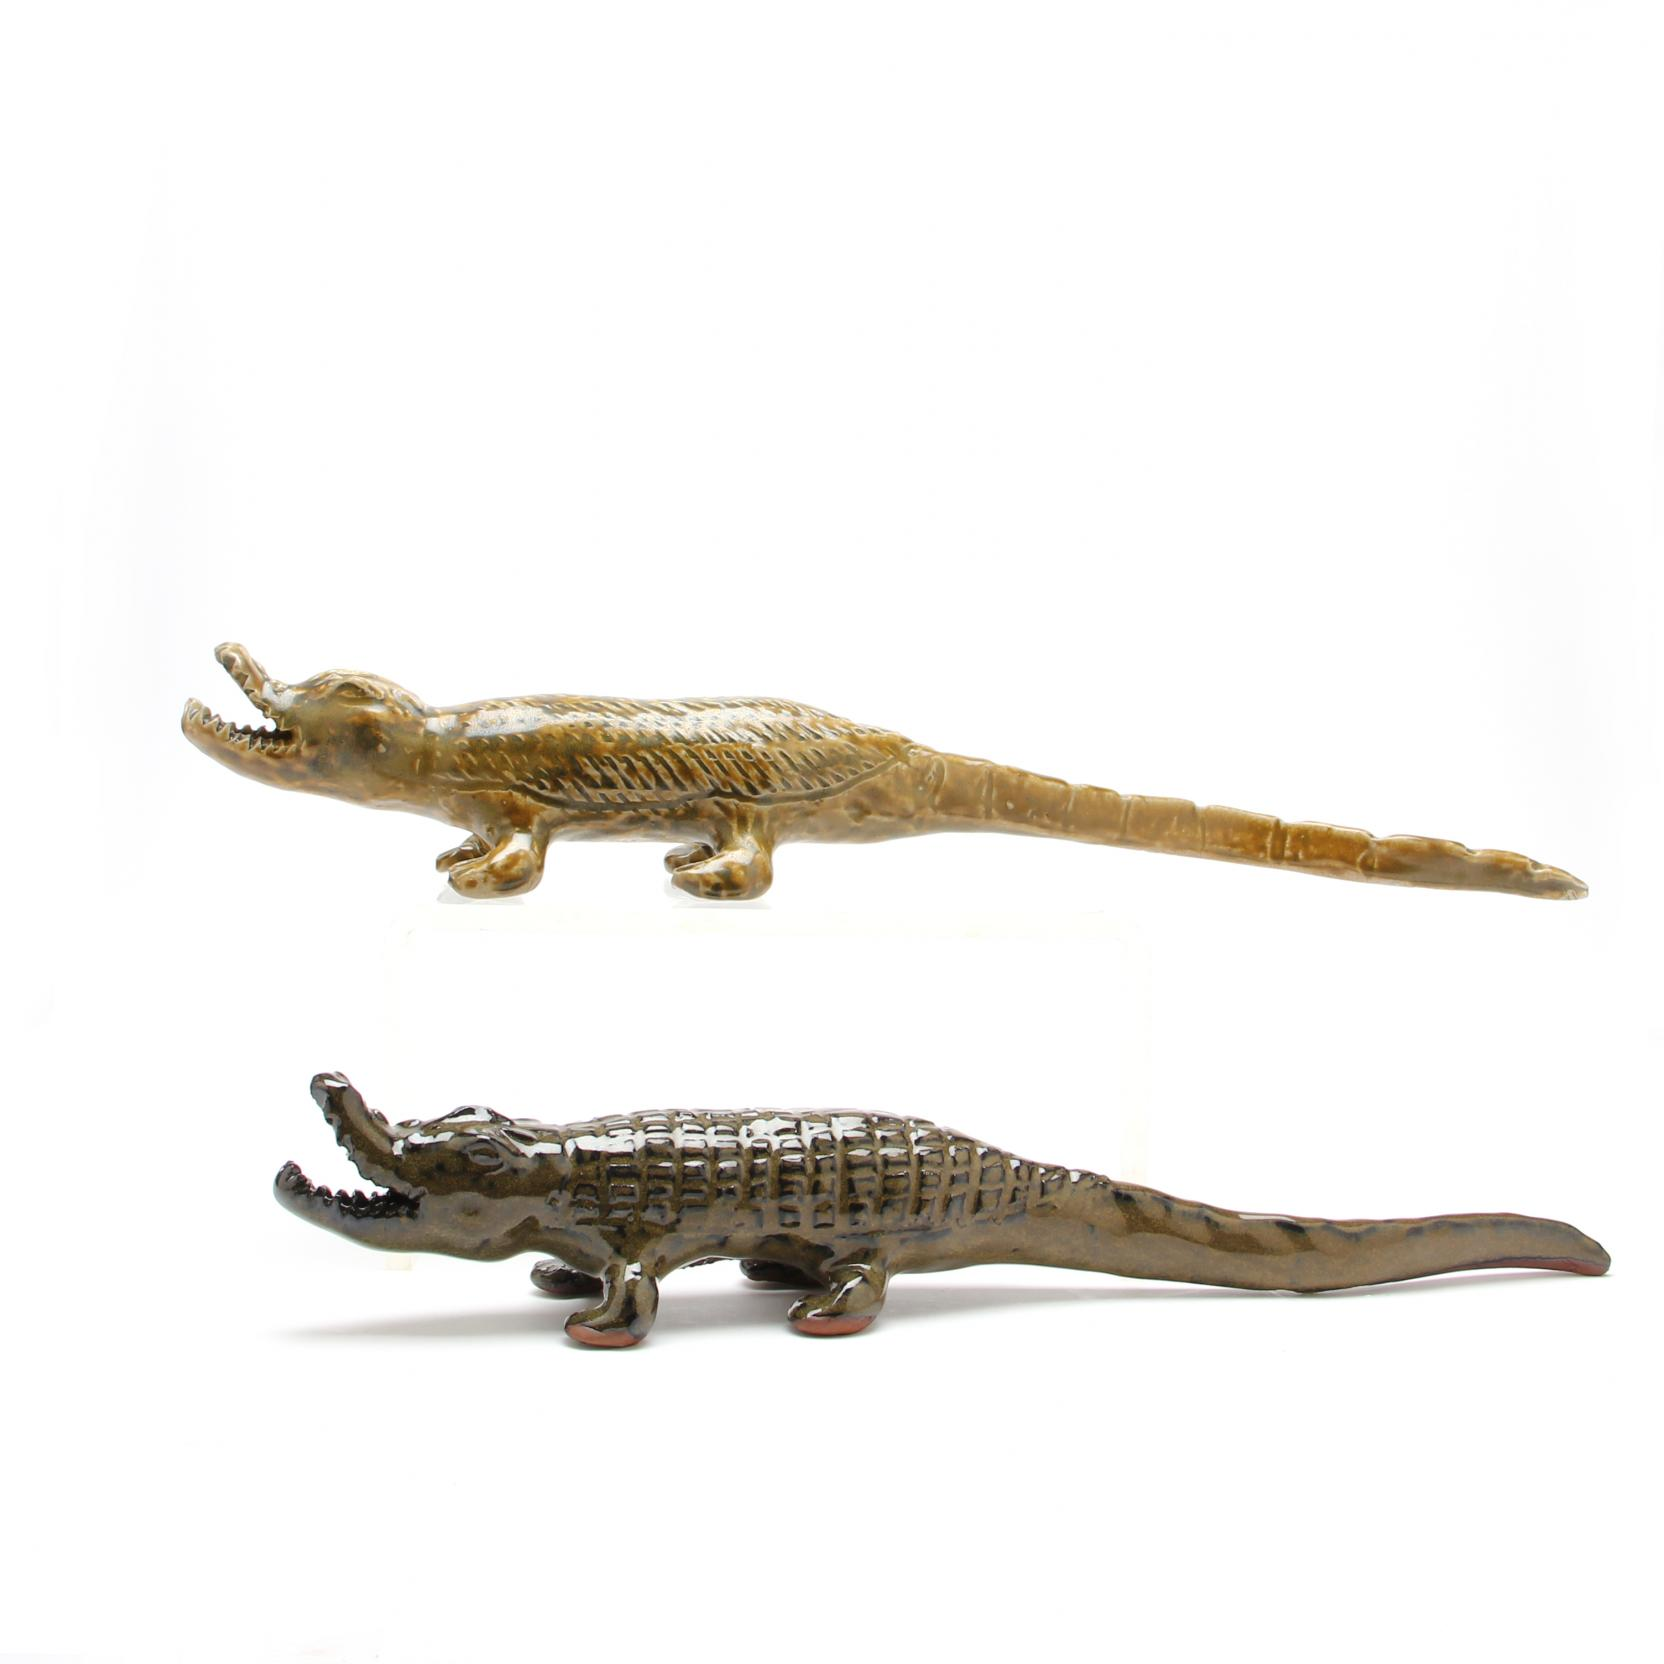 nc-folk-pottery-two-charles-moore-alligator-figures